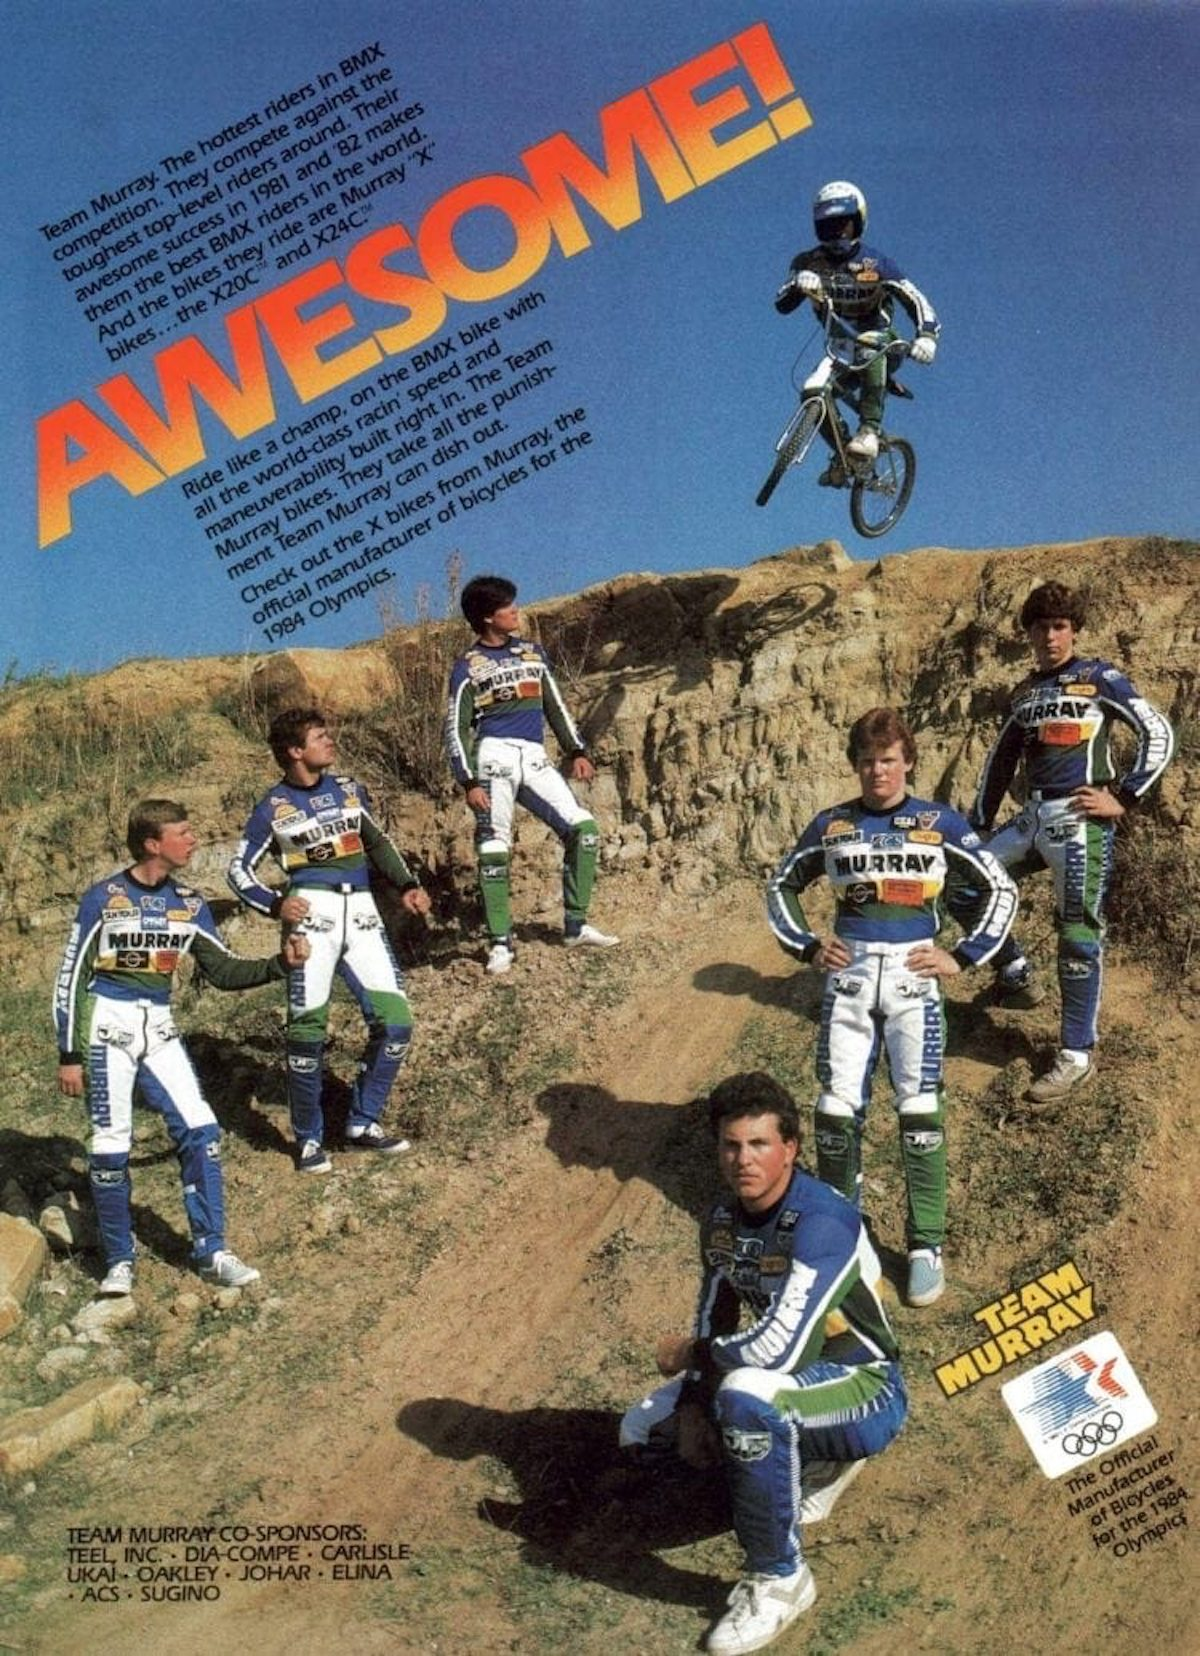 The Totally Rad Fad of 1980's BMX team murray